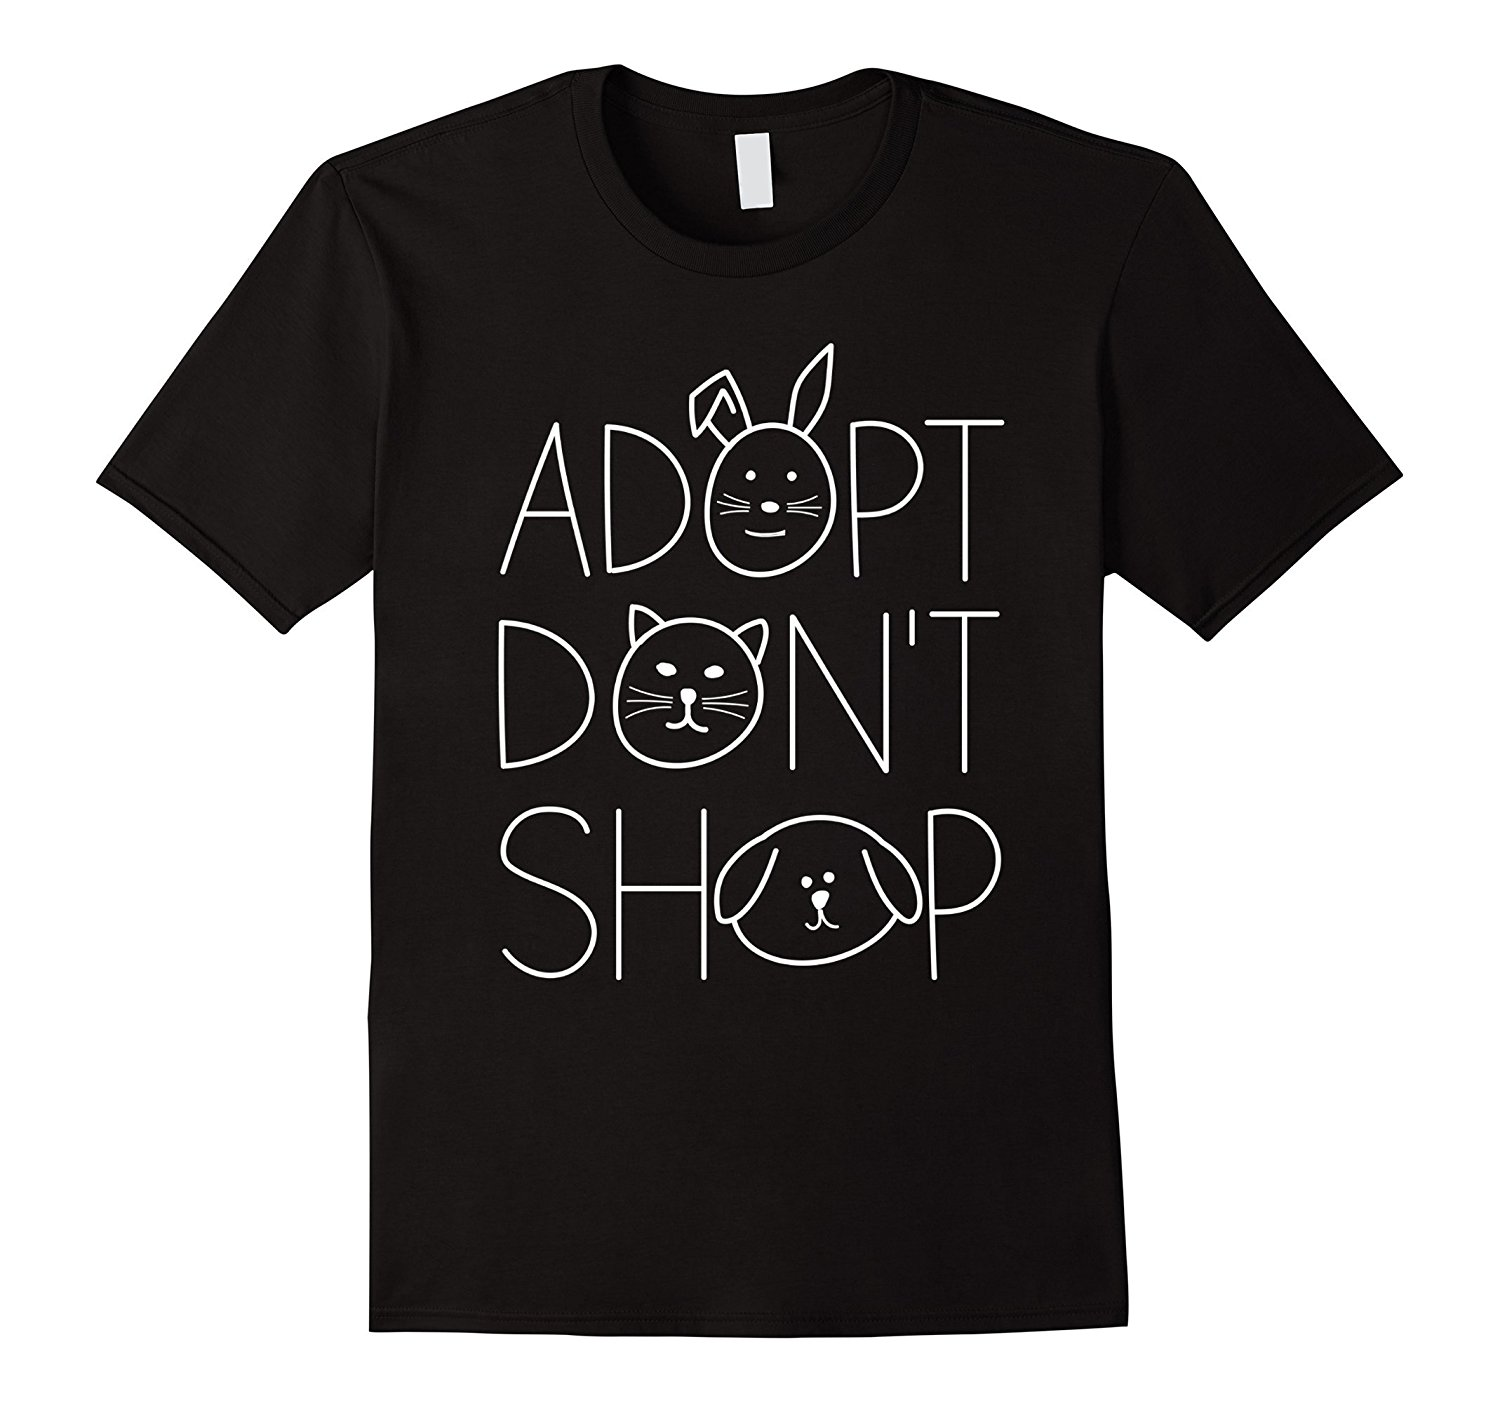 Adopt Dont Shop Animal Rescue T-Shirts for Animal Lovers Summer Short Sleeve Shirts Tops Big Size Cotton Tees Free Shipping